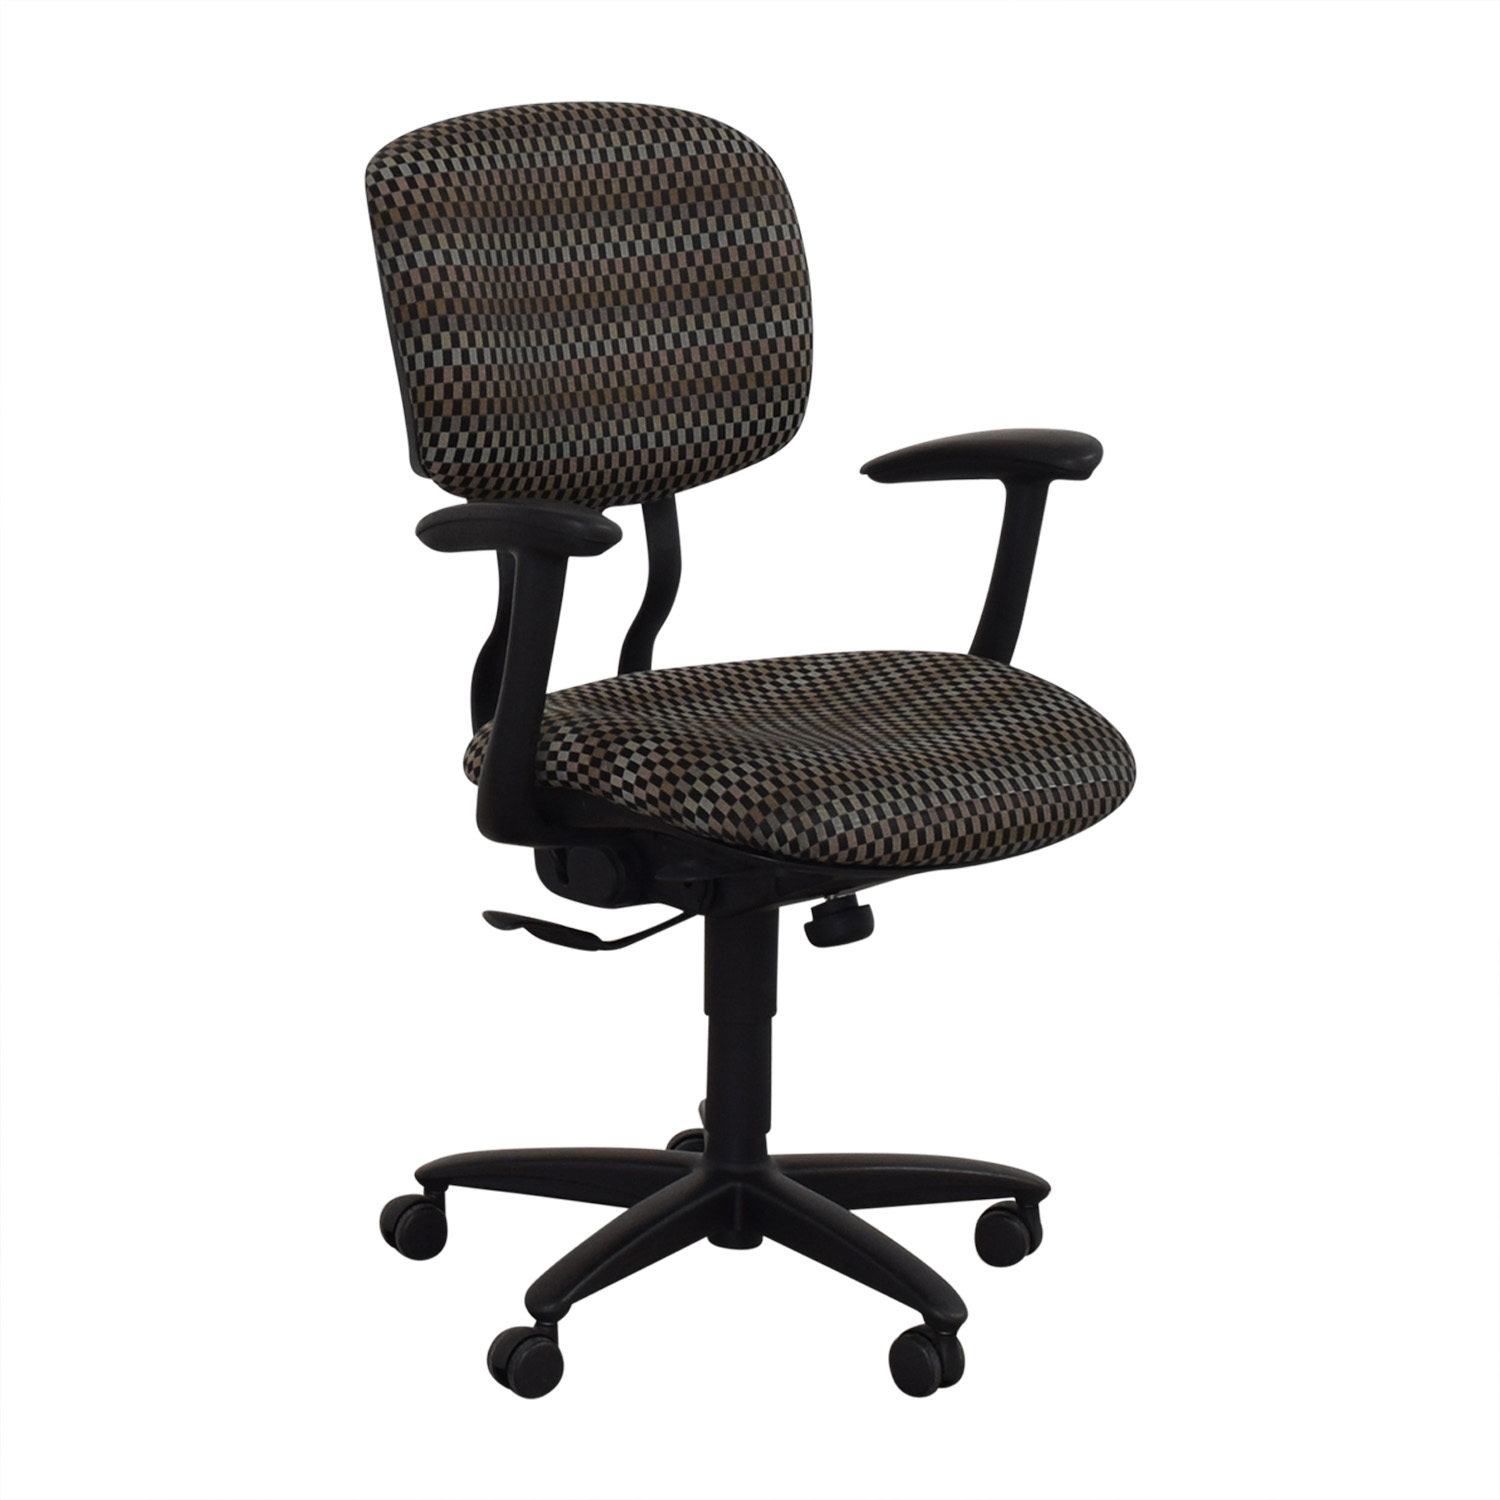 Haworth Haworth Improv Office Desk Chair nj